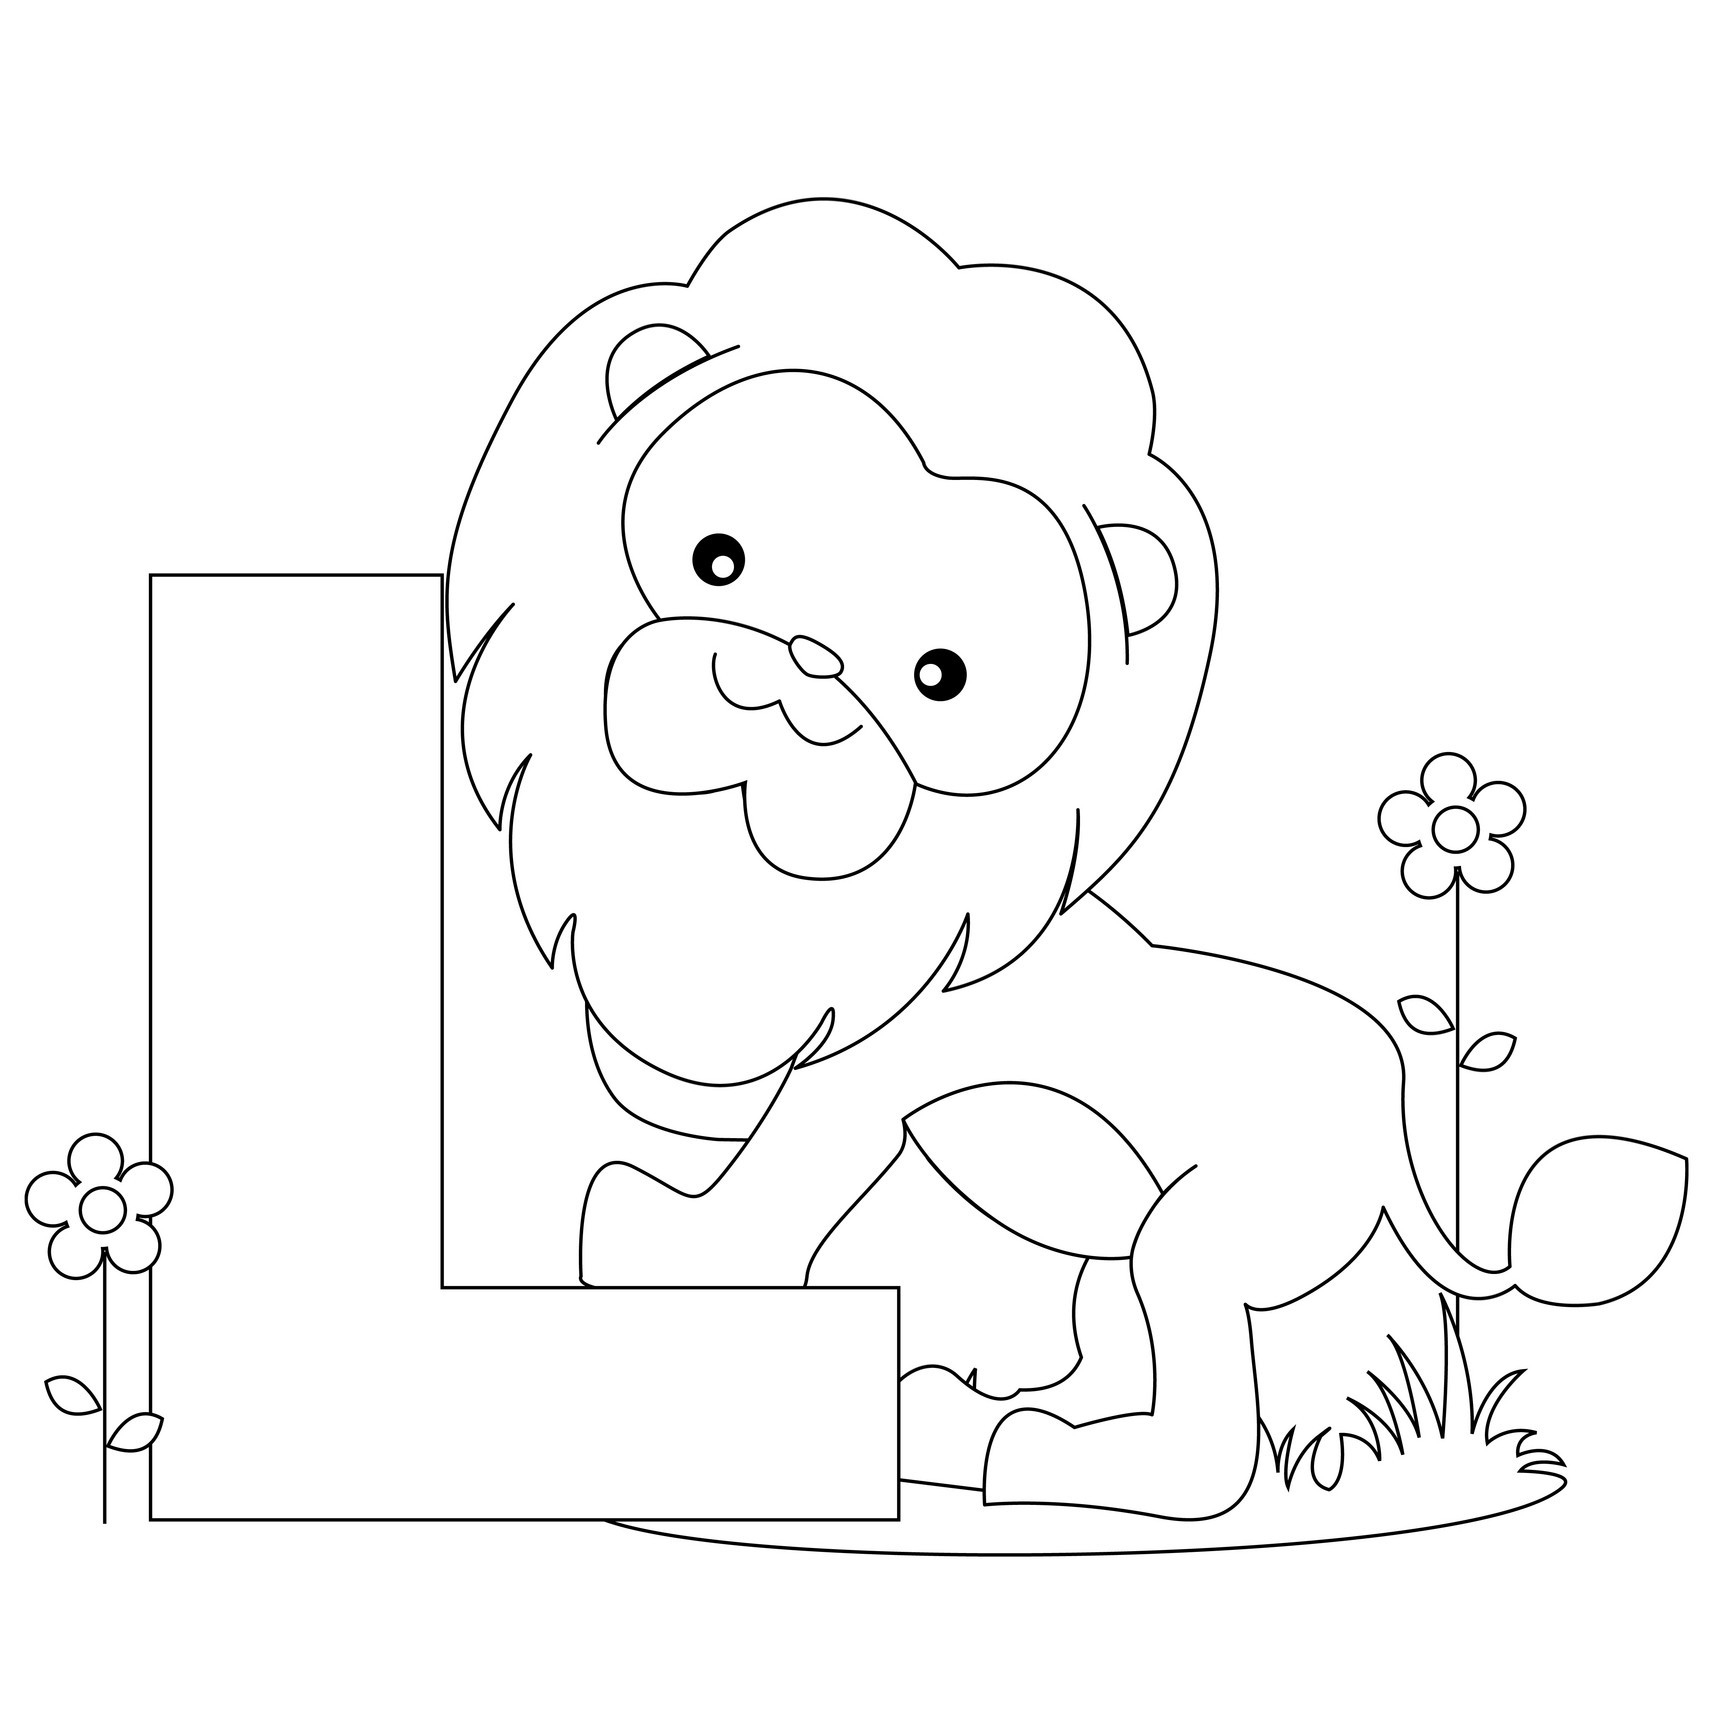 alphabet coloring worksheets alphabet flash cards coloring pages download and print for coloring worksheets alphabet